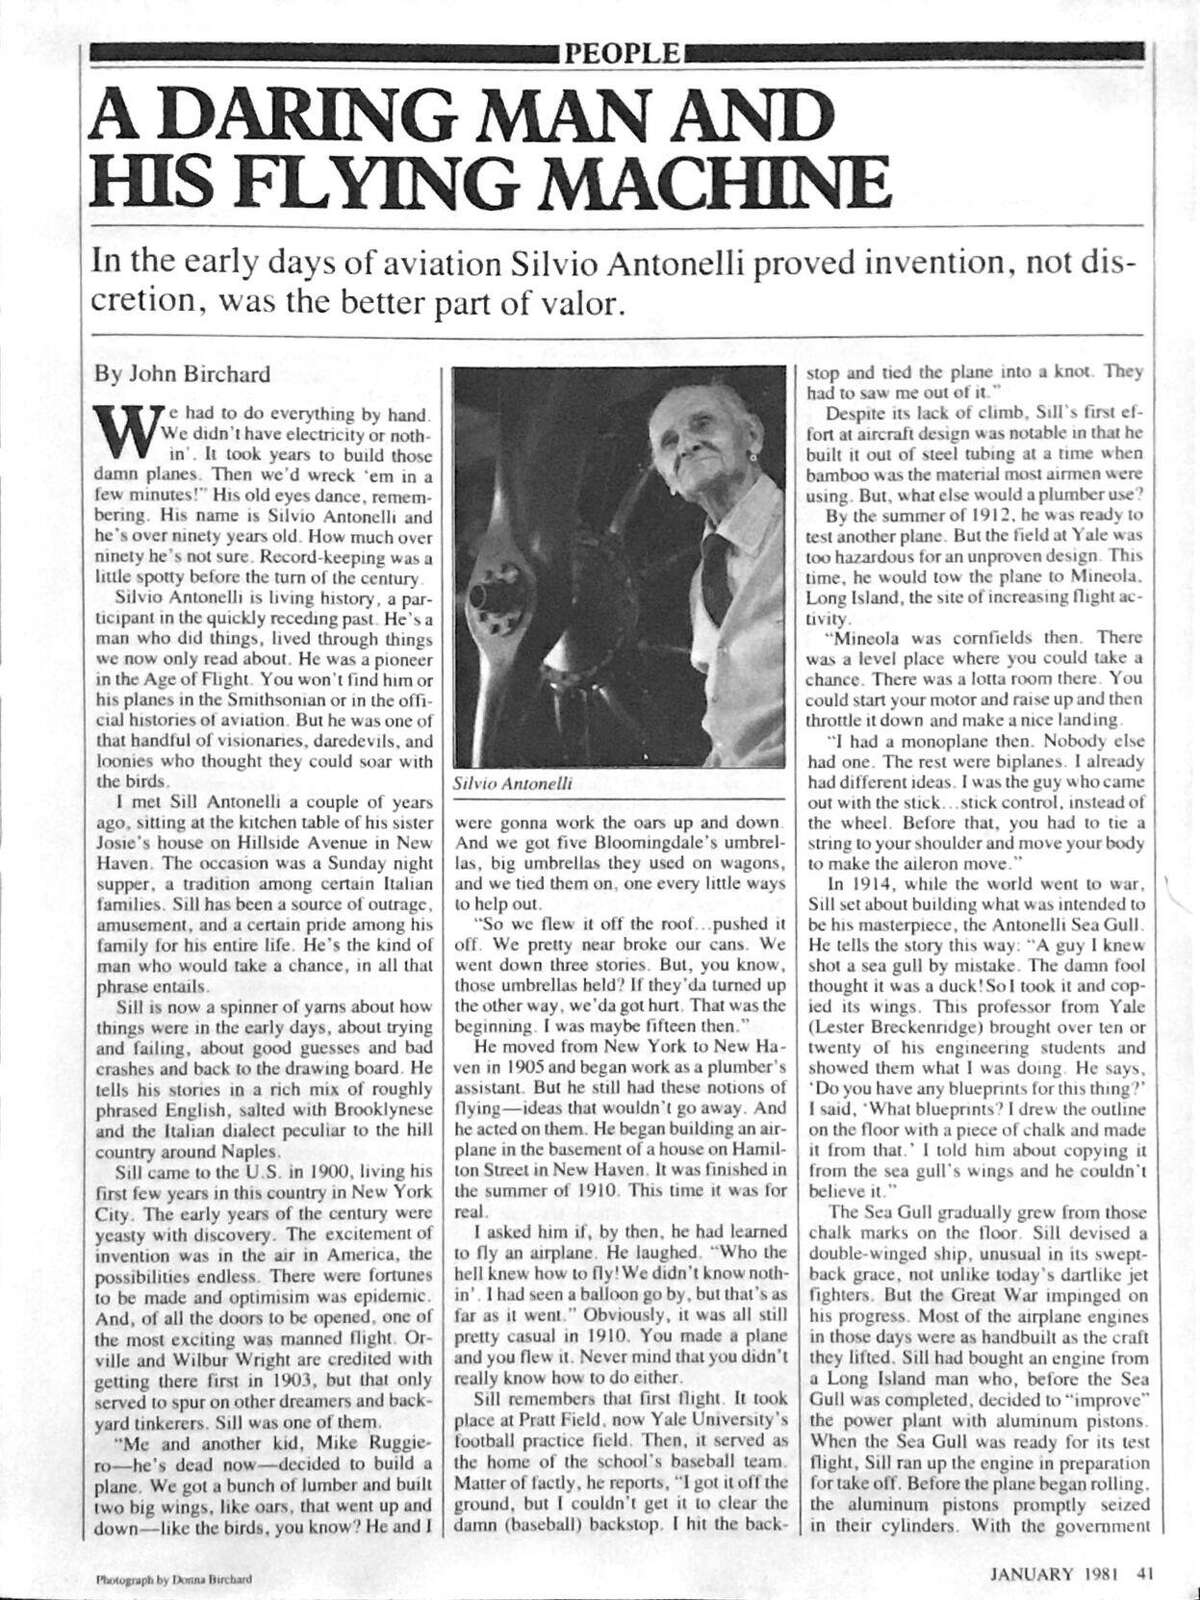 """In this CT Magazine article from January 1981, titled """"A Daring Man and His Flying Machine,"""" we meet ninety-something-year-old Silvio Antonelli, who gives a first-hand account on the frontier of manned aviation."""